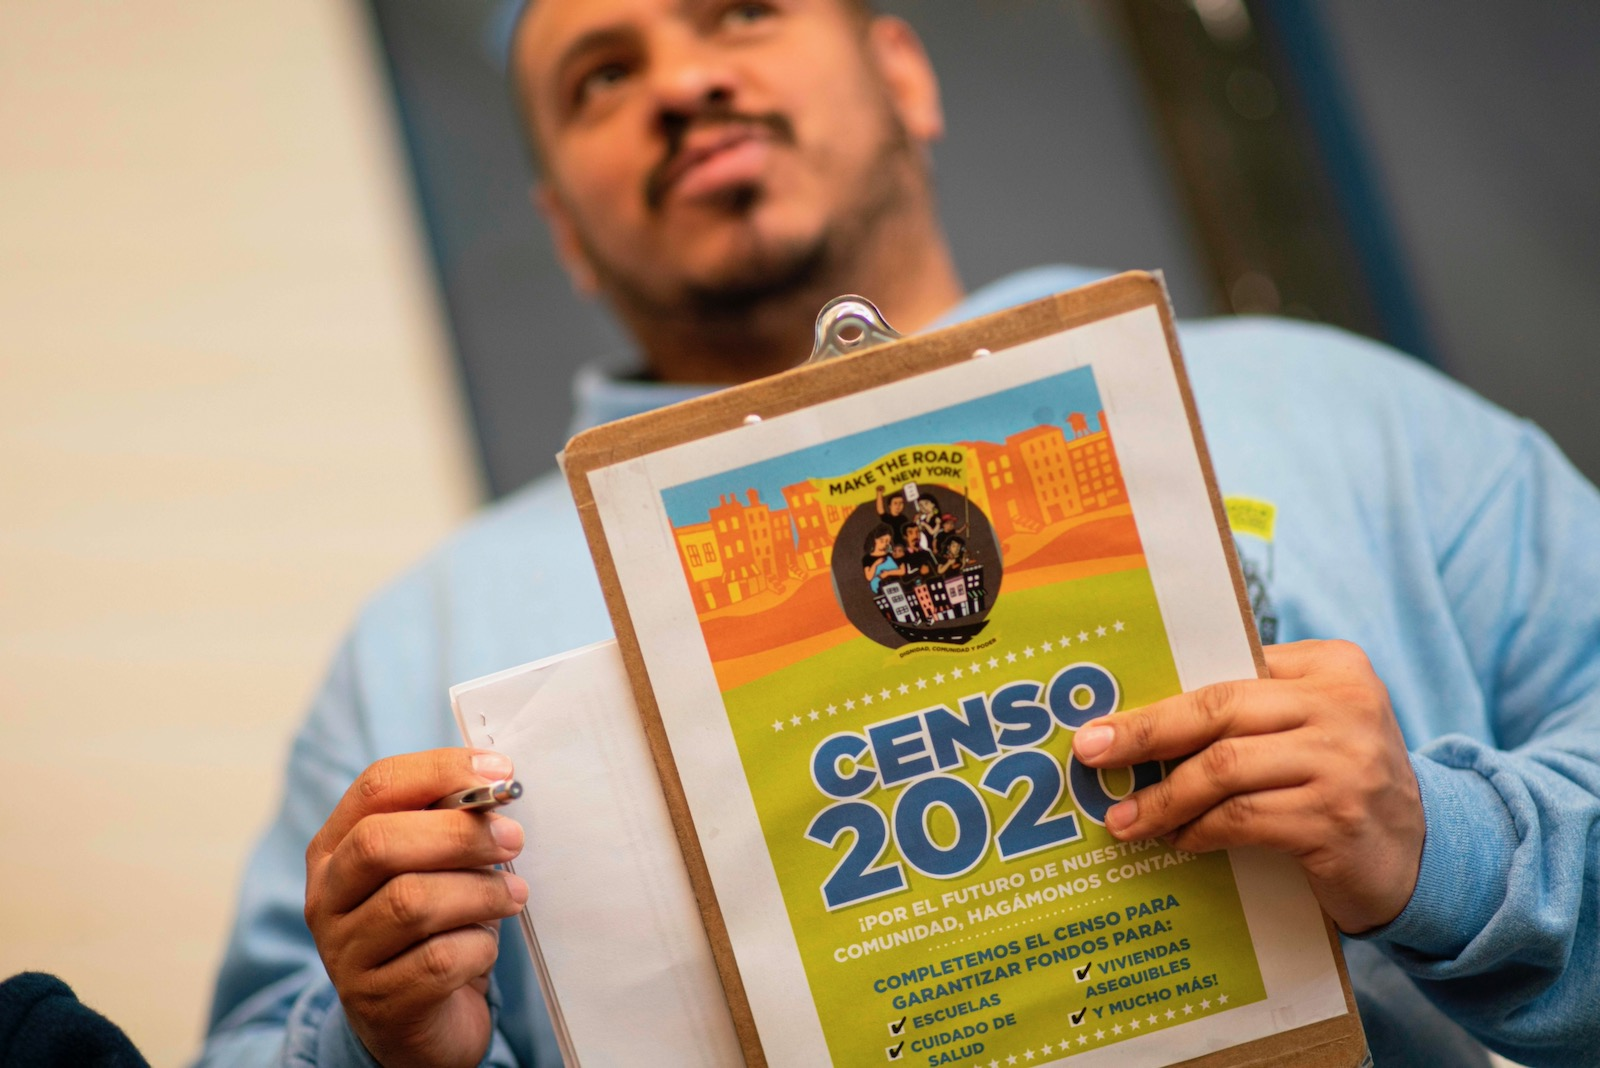 Douglas Carrasquell, of the immigrant rights group Make the Road New York, attending a training meeting about Census, Queens, New York, March 13, 2020